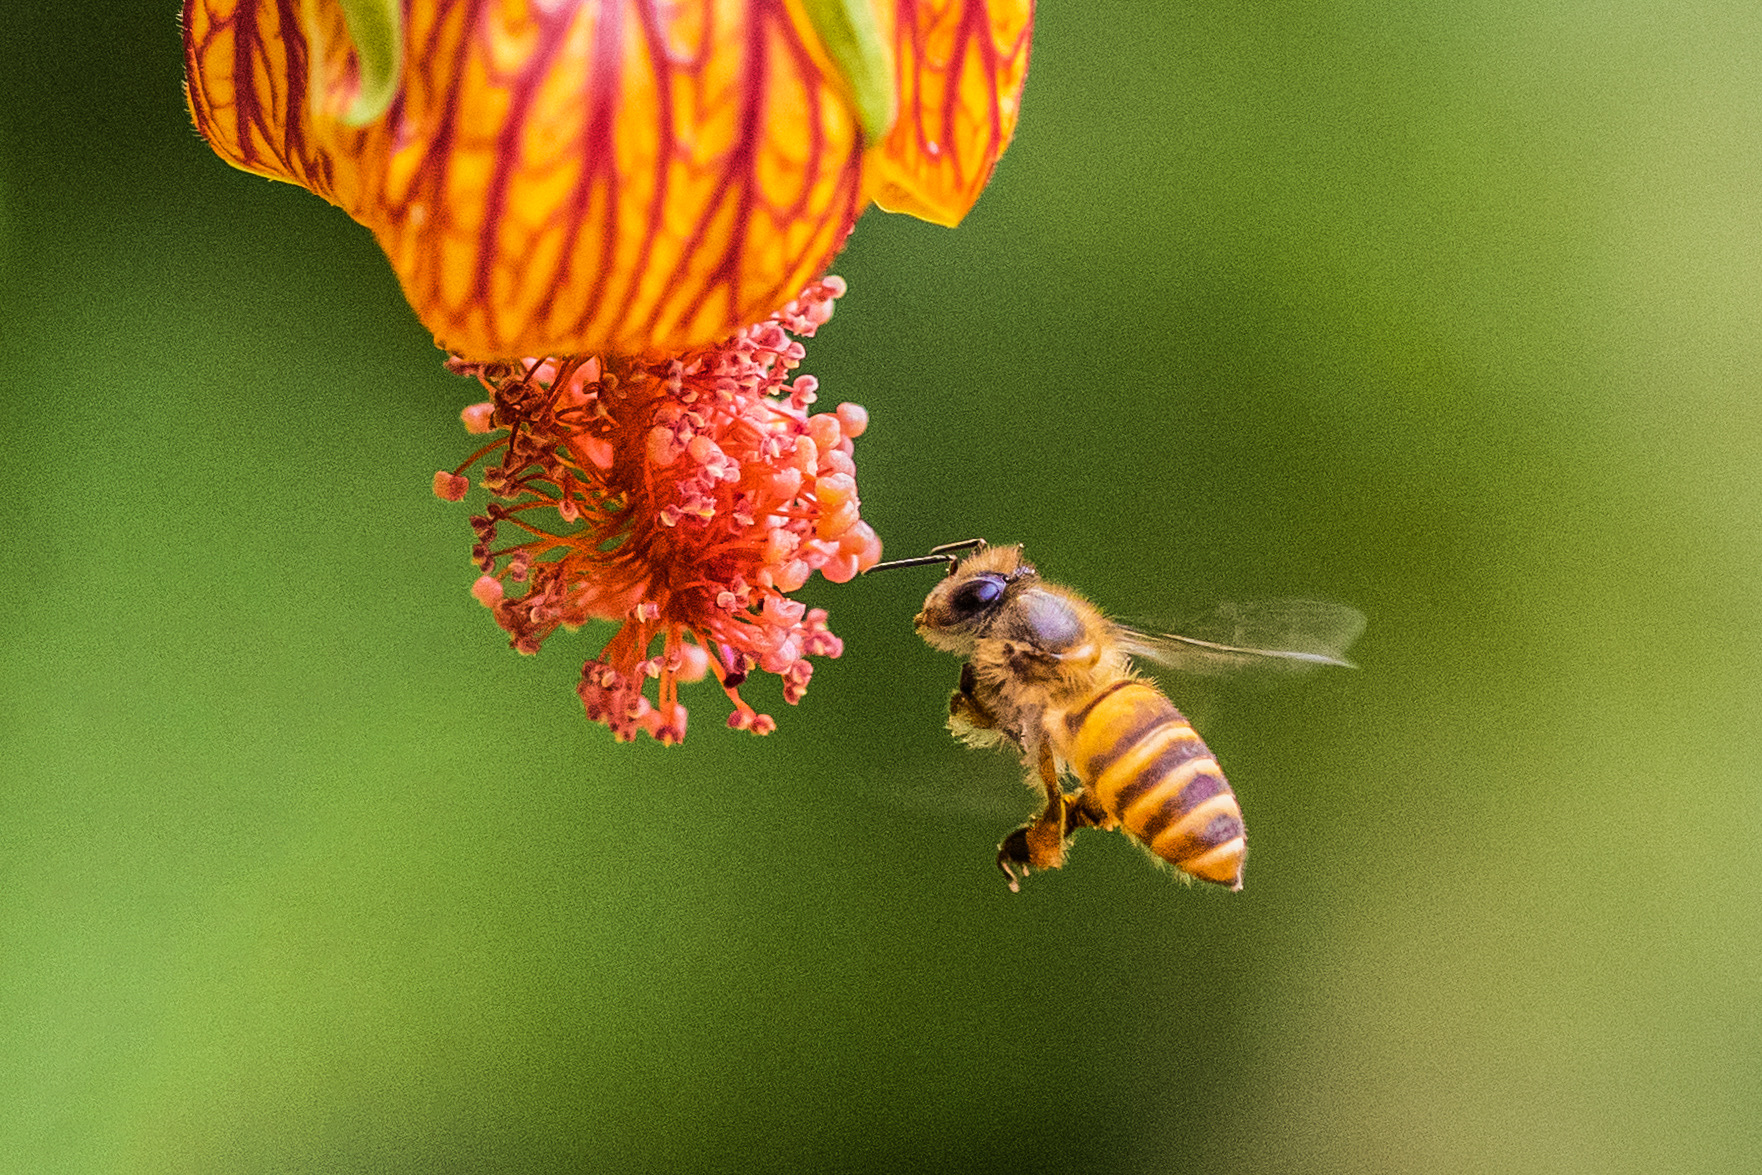 #bee #nature, Chan Benny